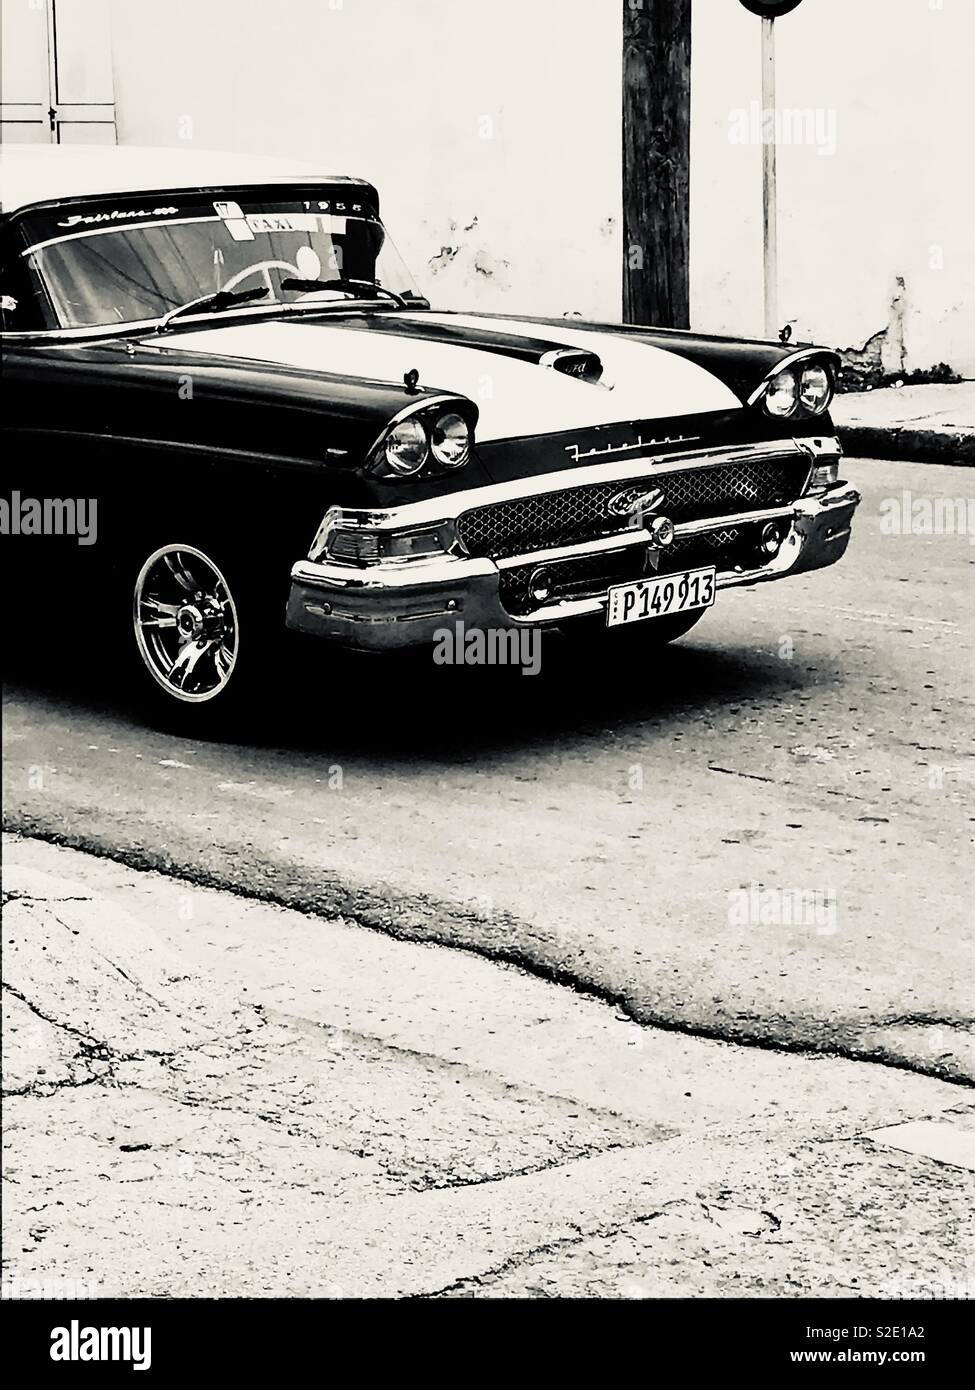 Black and white classic car in Cienfuegos Cuba - Stock Image